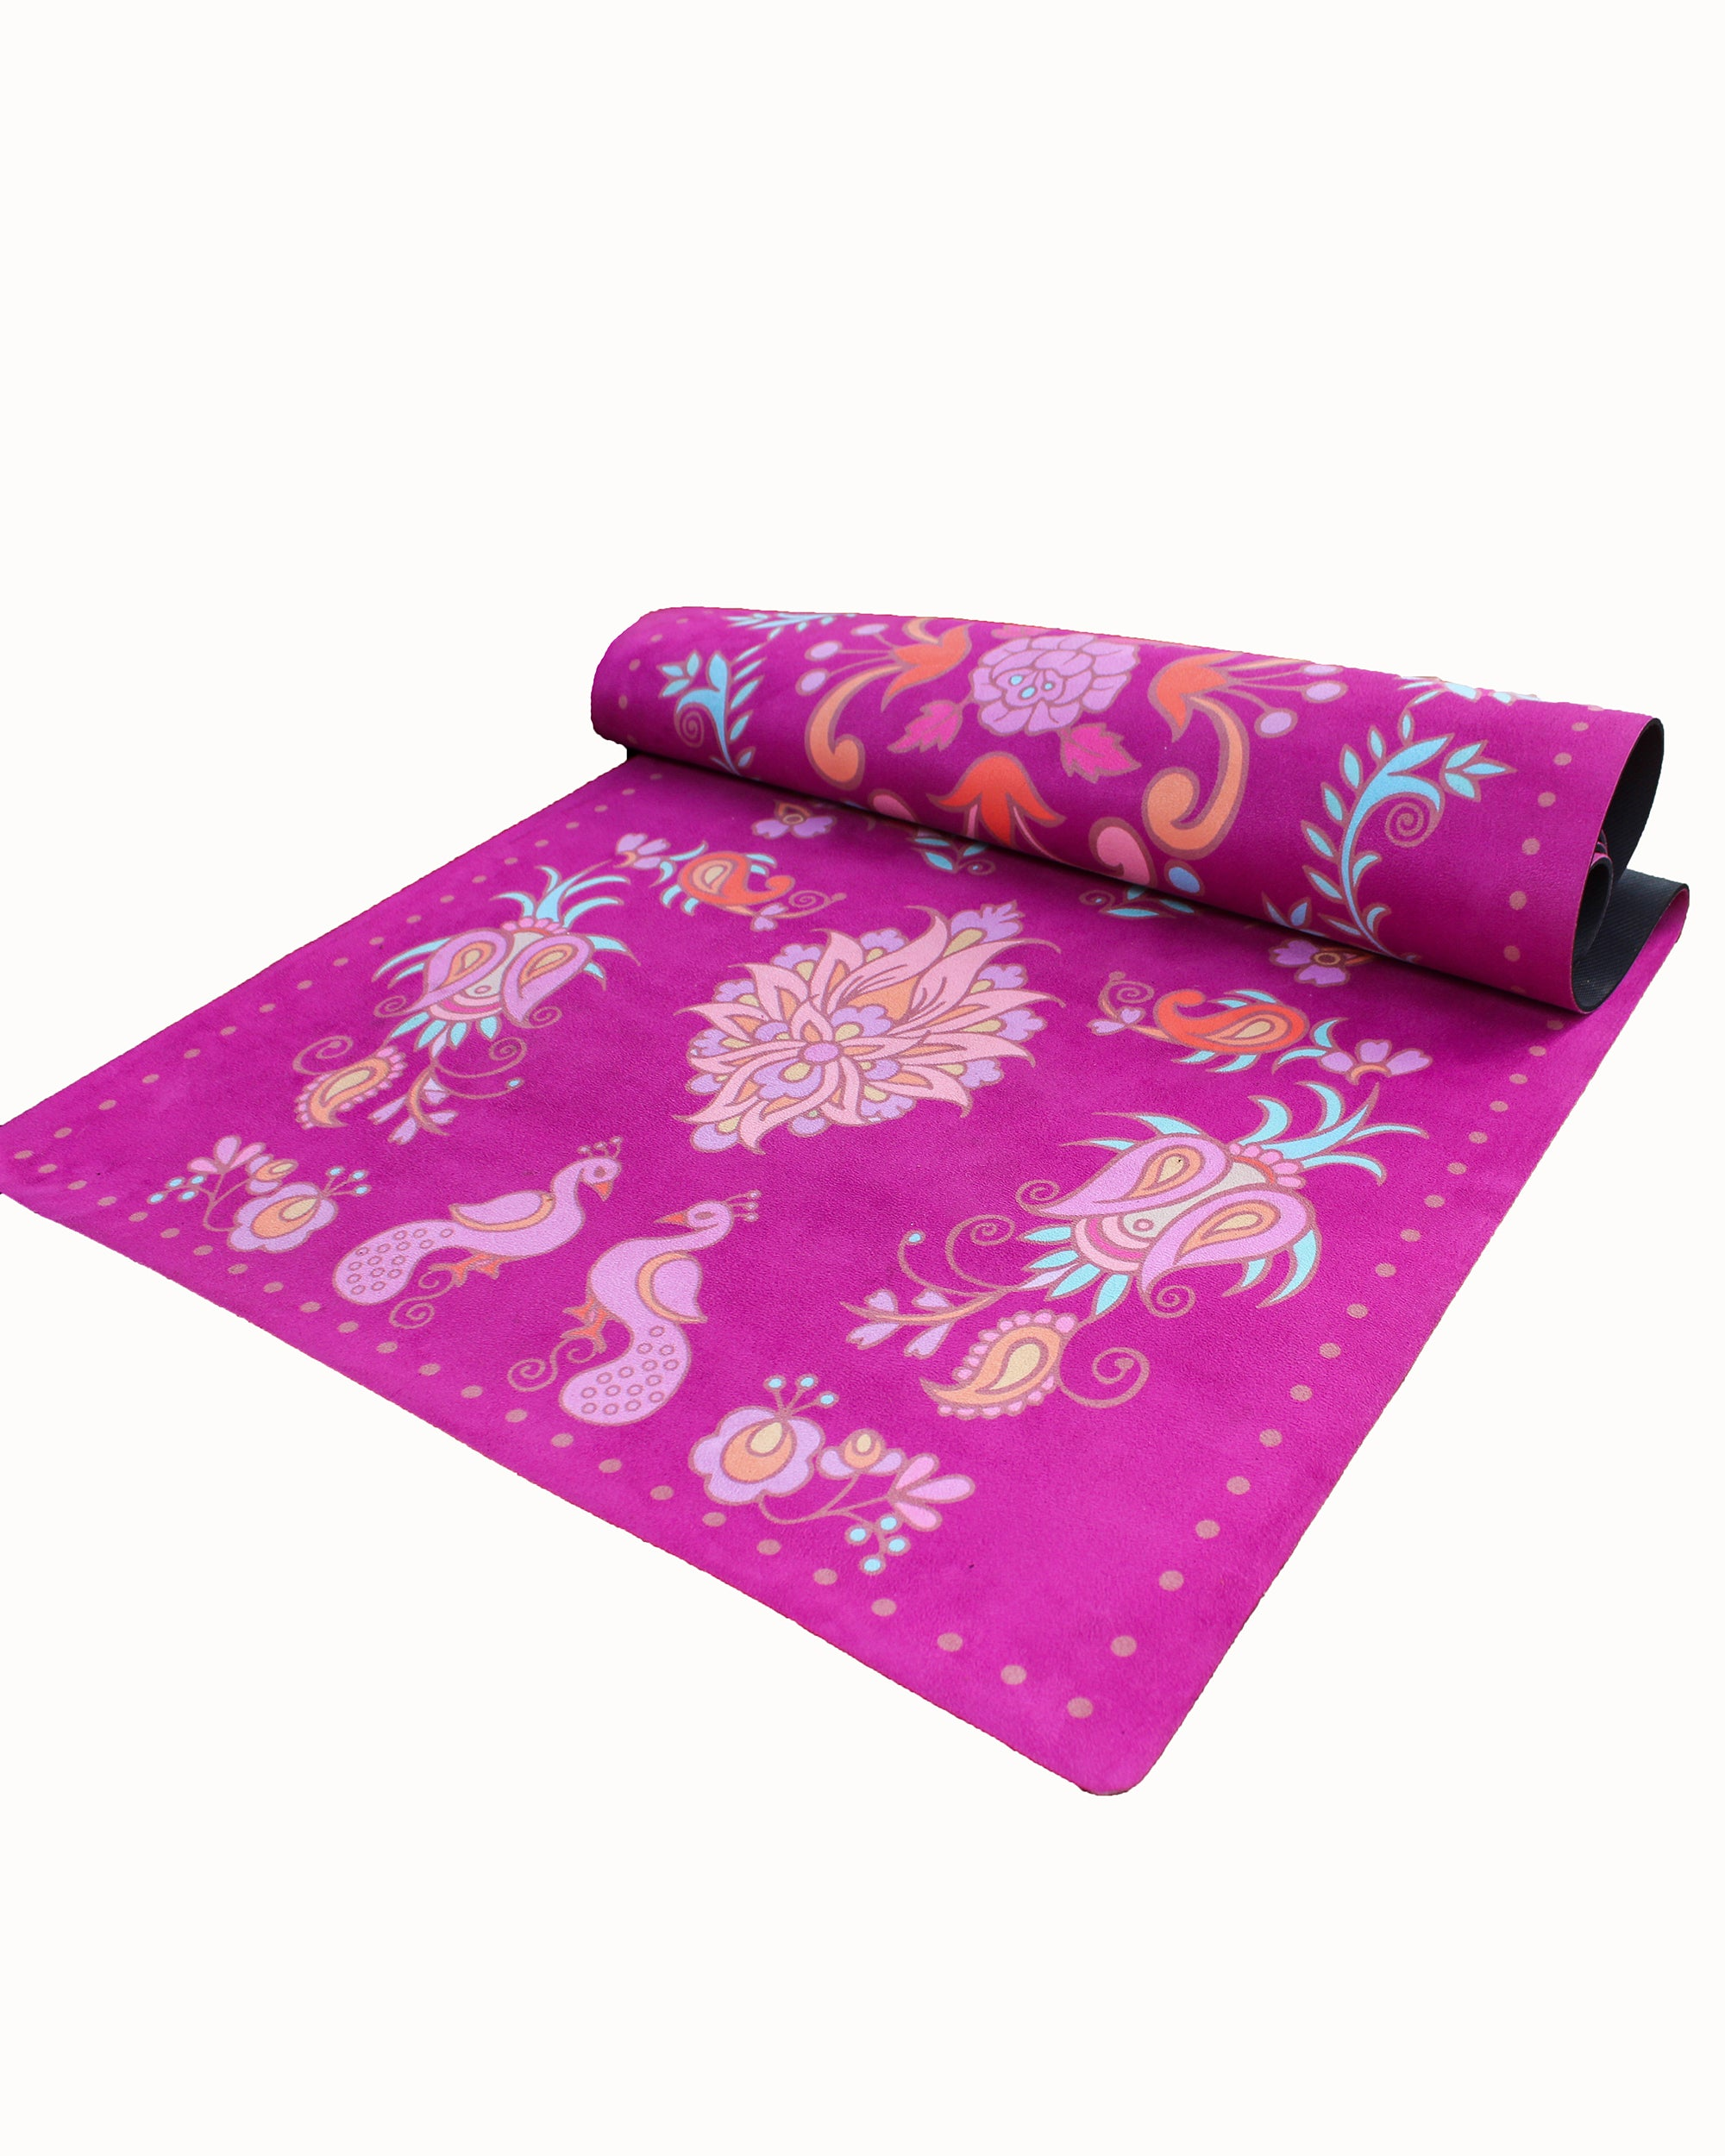 yoga product archives eco mat category artist artistlove friendly love mandala mats